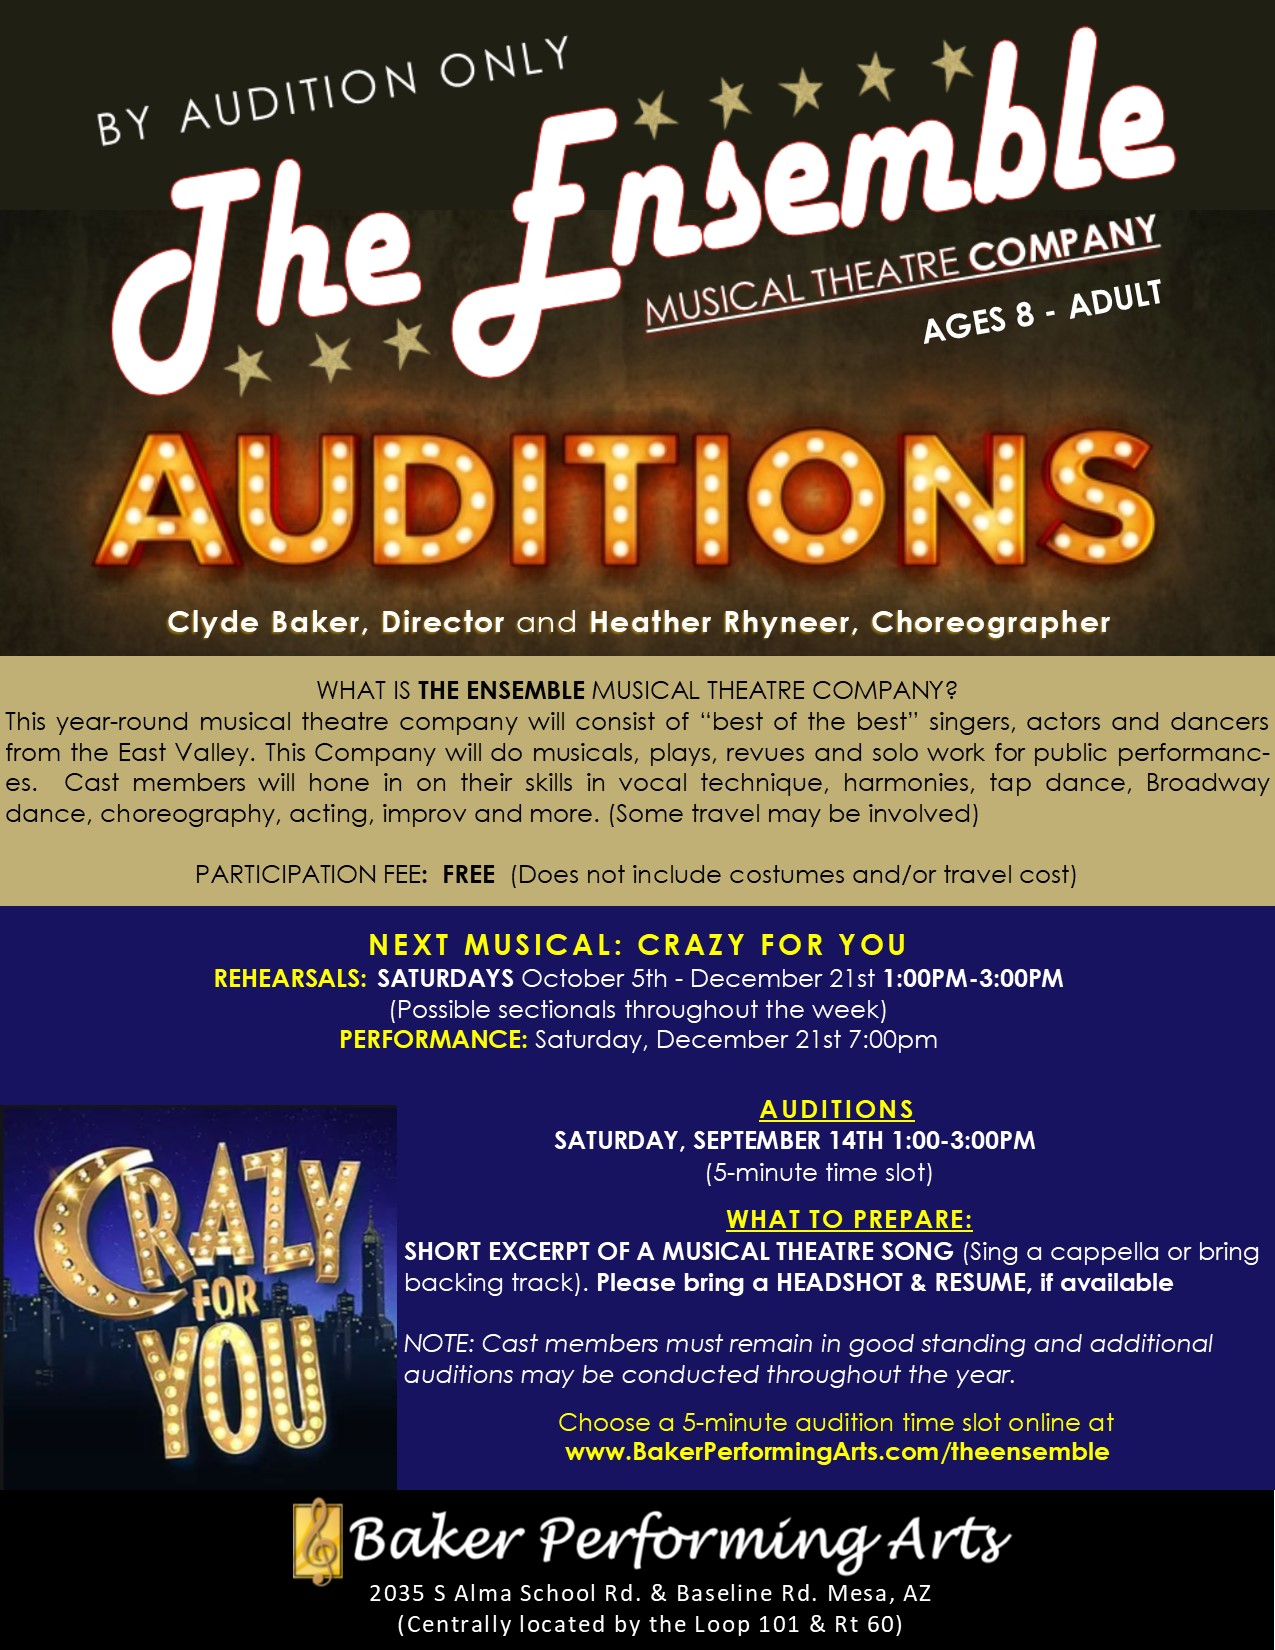 The Ensemble Musical Theatre Company Auditions (Ages 8-Adult